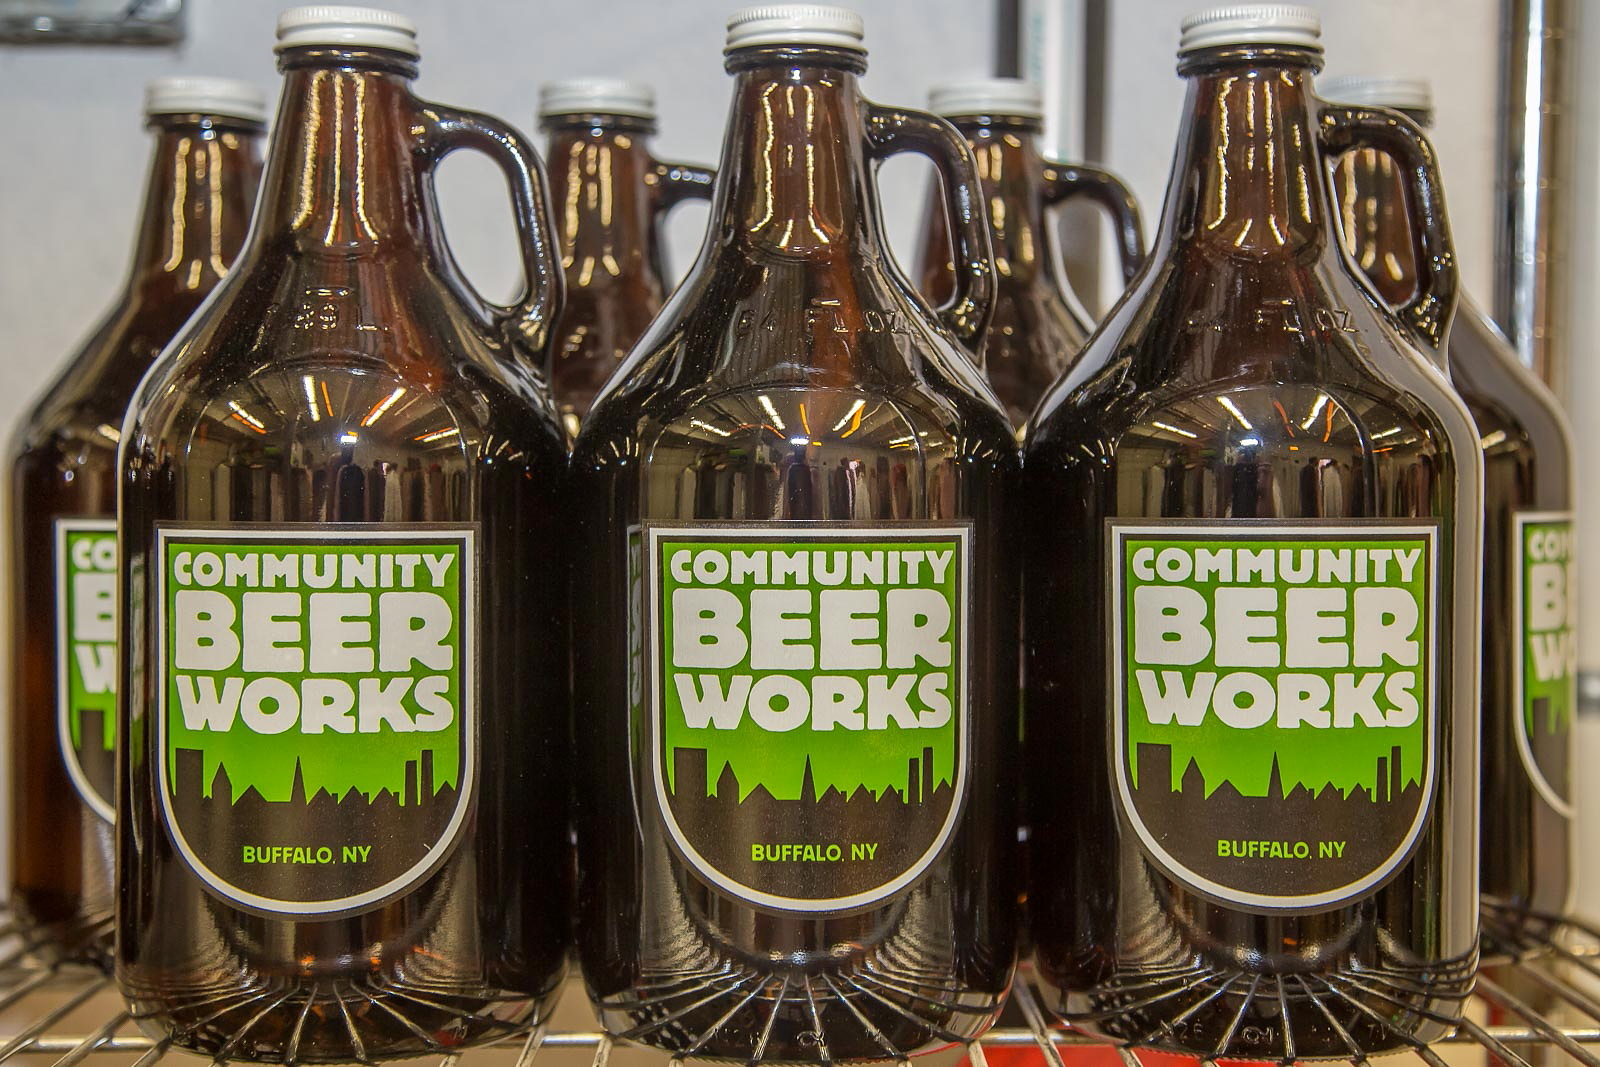 Community Beer Works will celebrate its fifth anniversary this weekend. (Don Nieman/Special to The News)